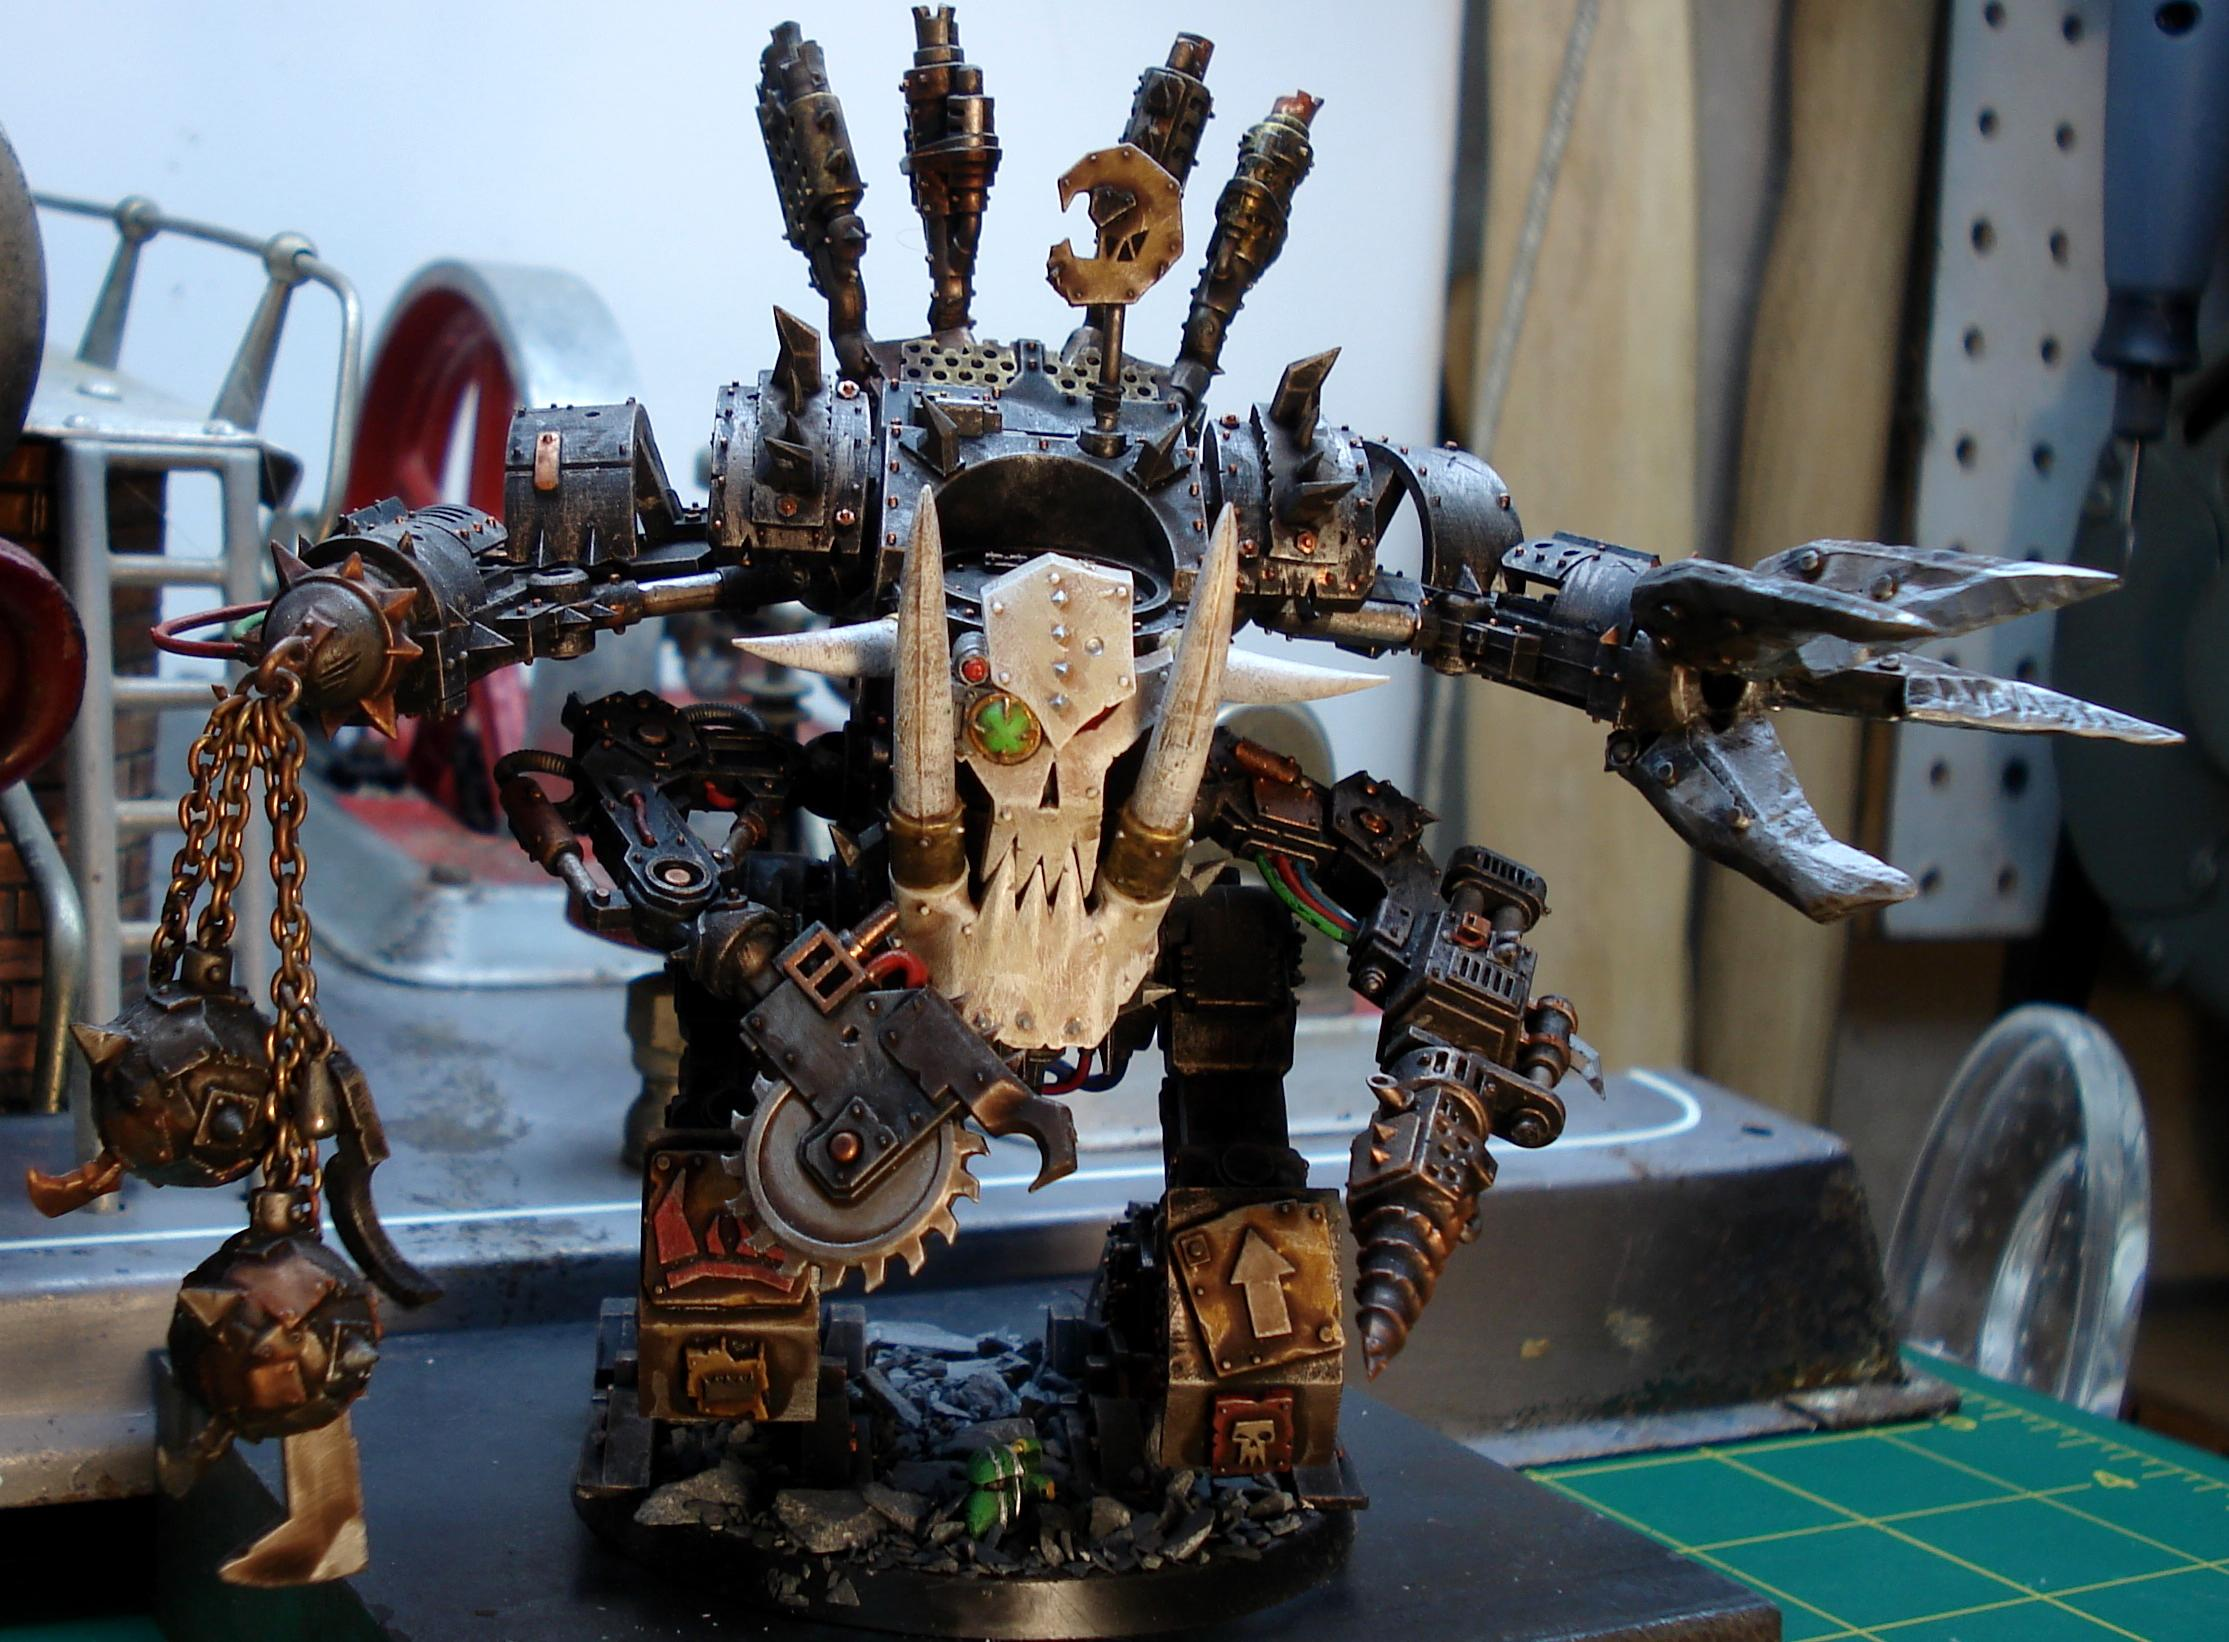 Bad Moons, Claw, Comission, Custom, Deff, Dreadnought, Field, Force, Kustom, Moons, Orks, Space Marines